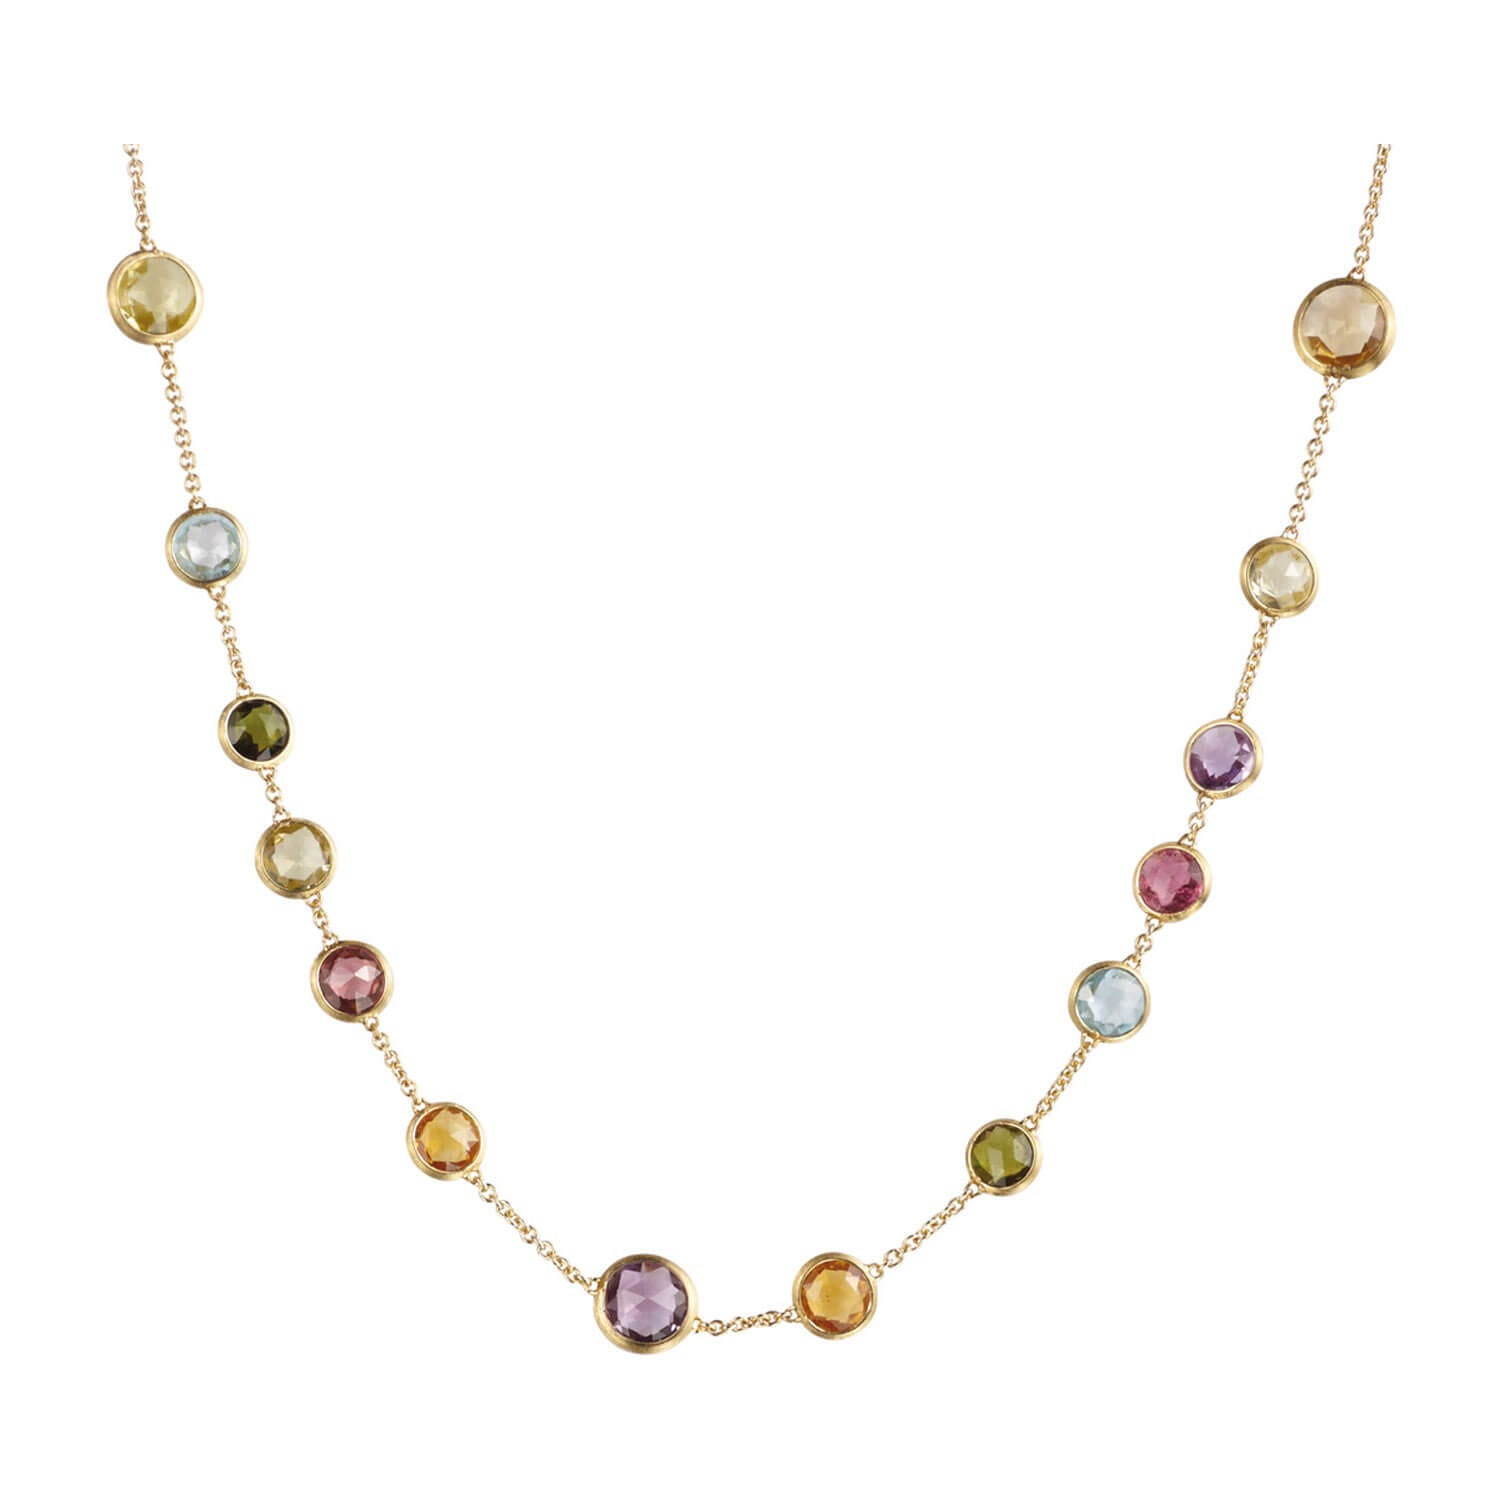 Marco Bicego Jaipur 18ct Yellow Gold & Mixed Gemstones Small Bead Necklace